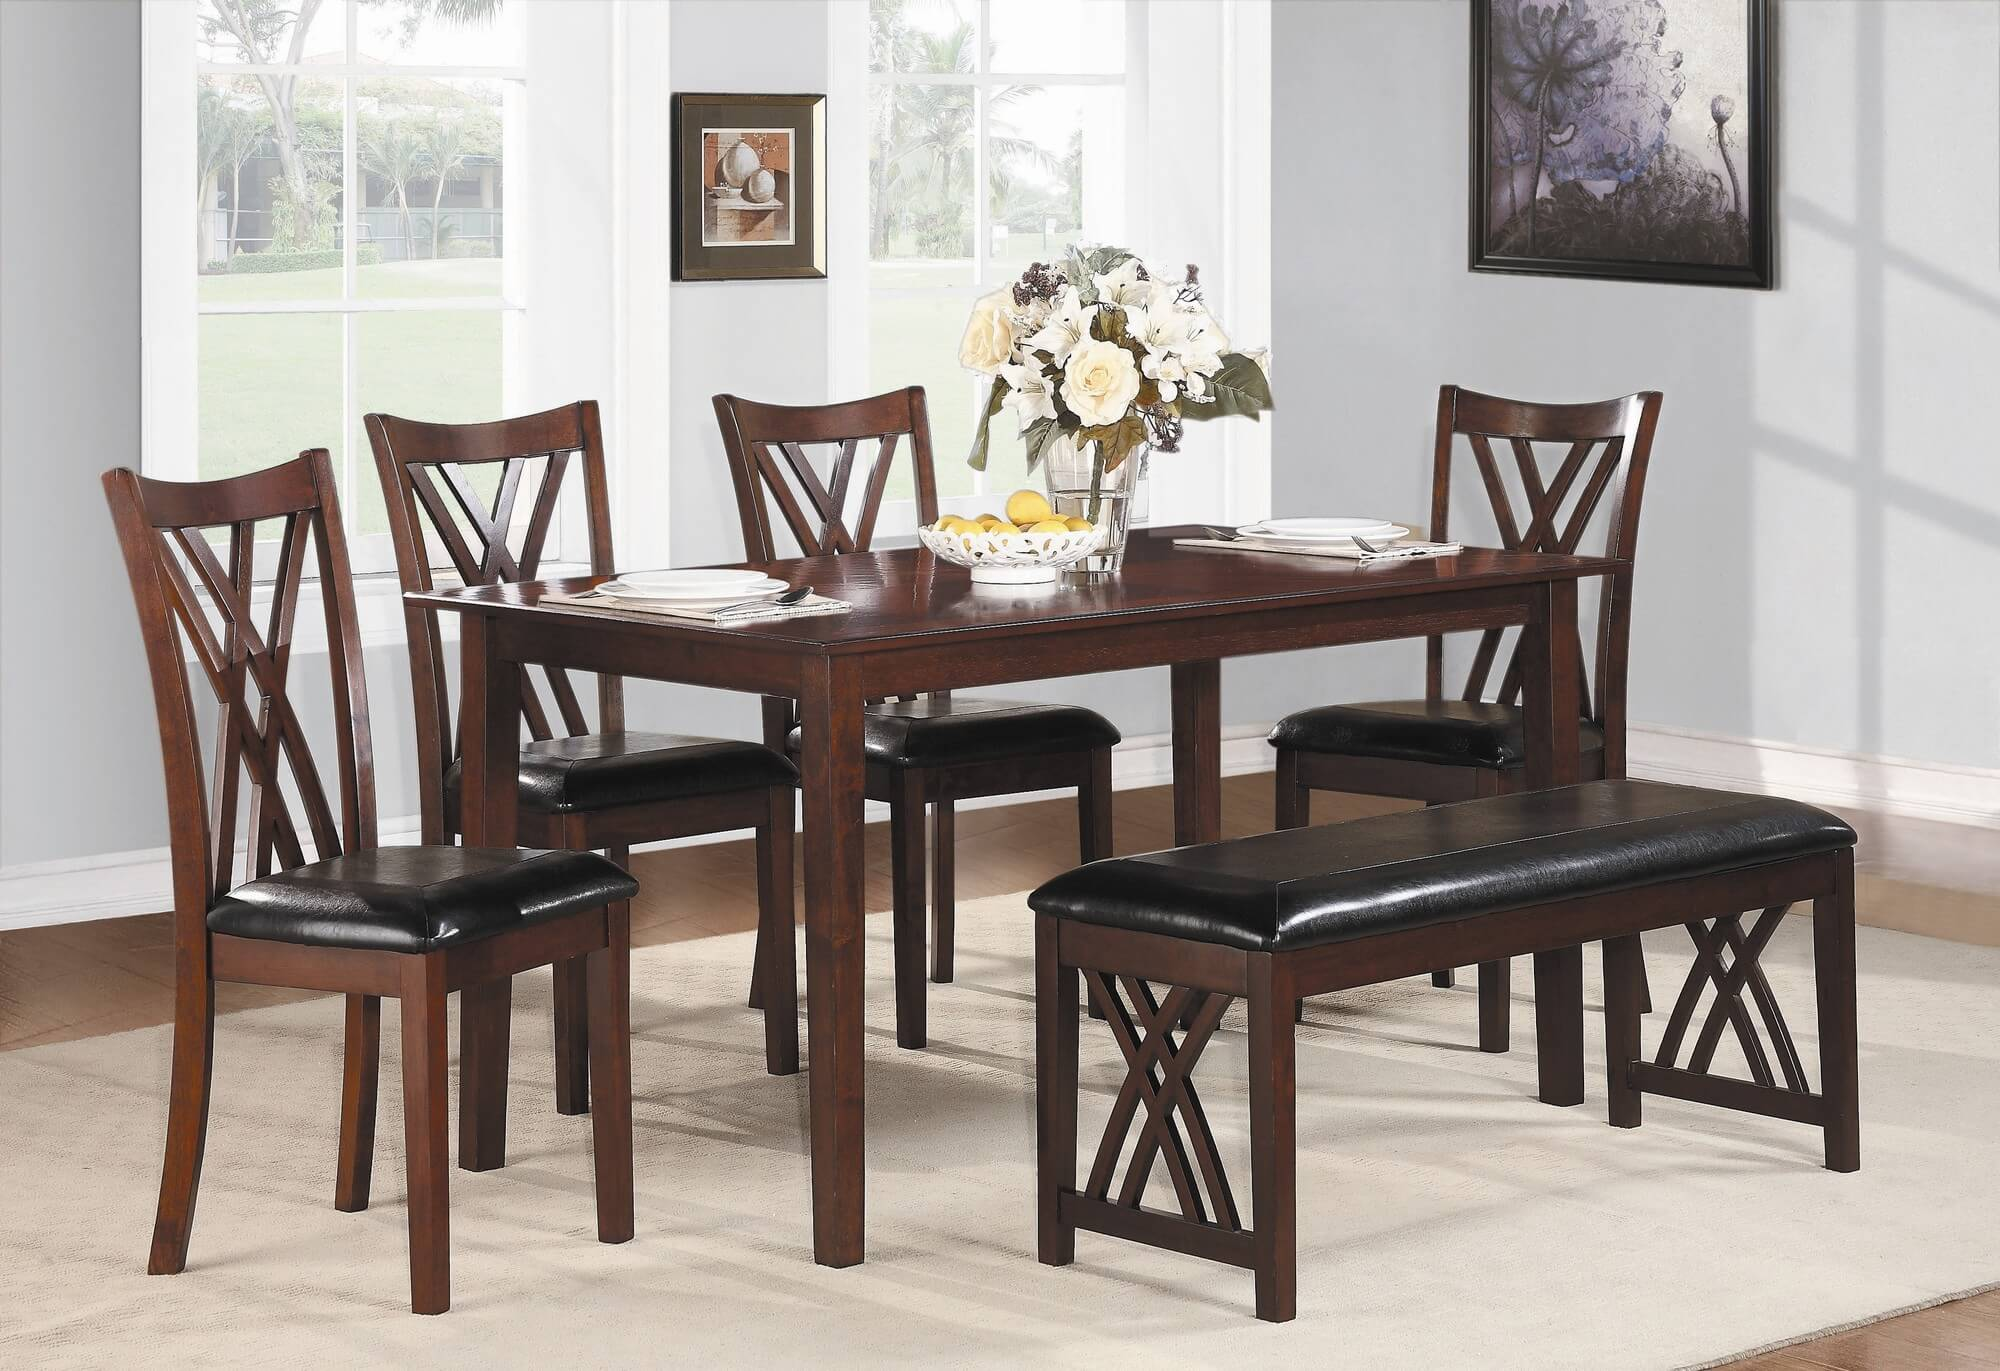 Dining Room Cherry Wood Chairs